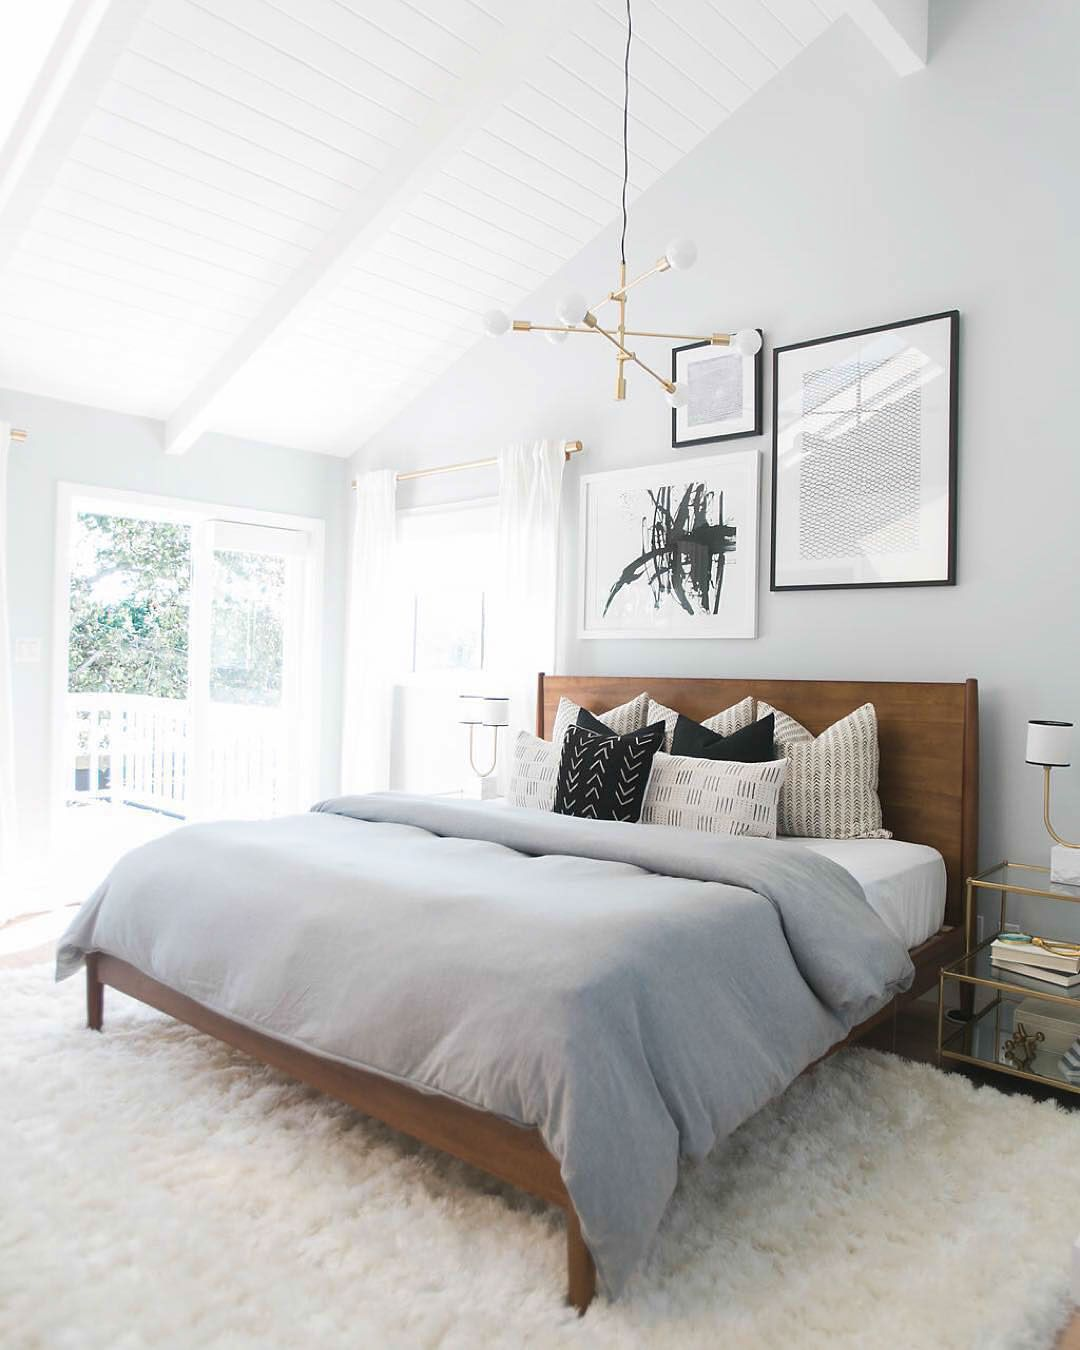 Bedroom Furniture Unique Lighting And More From West Elm Get Inspired